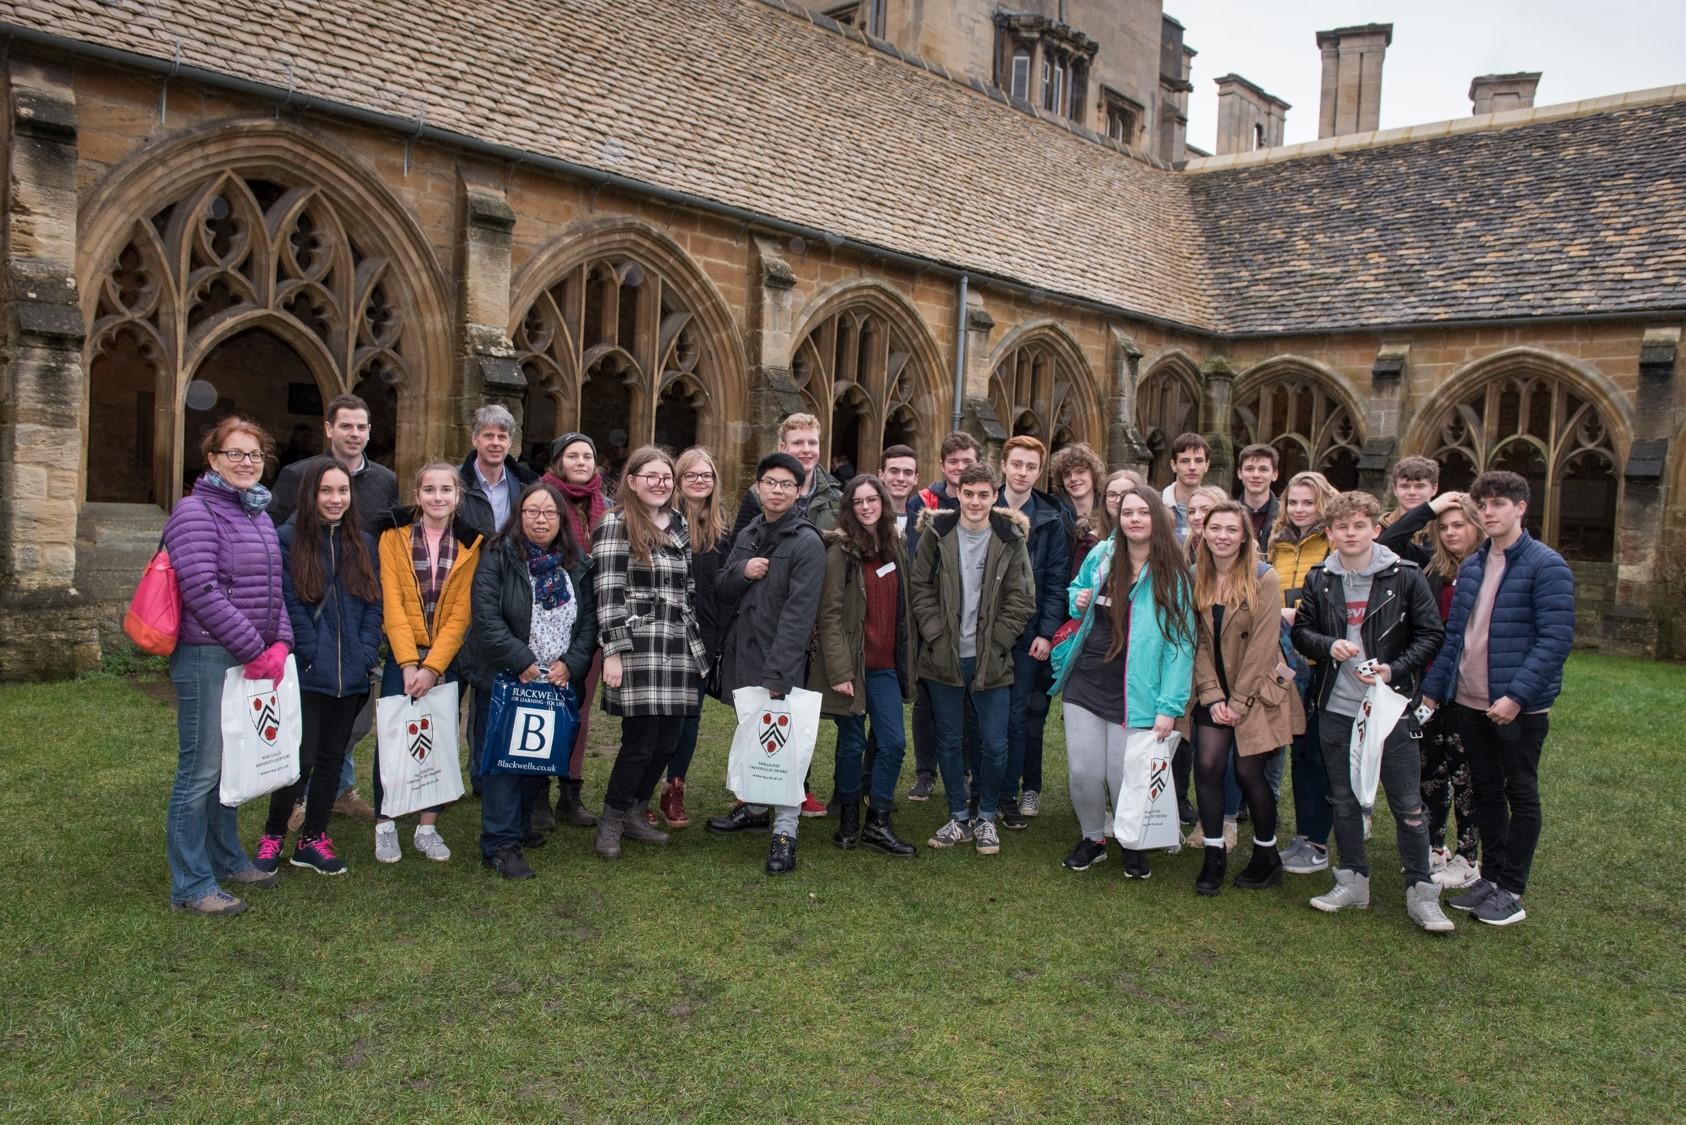 Group photo in Cloisters